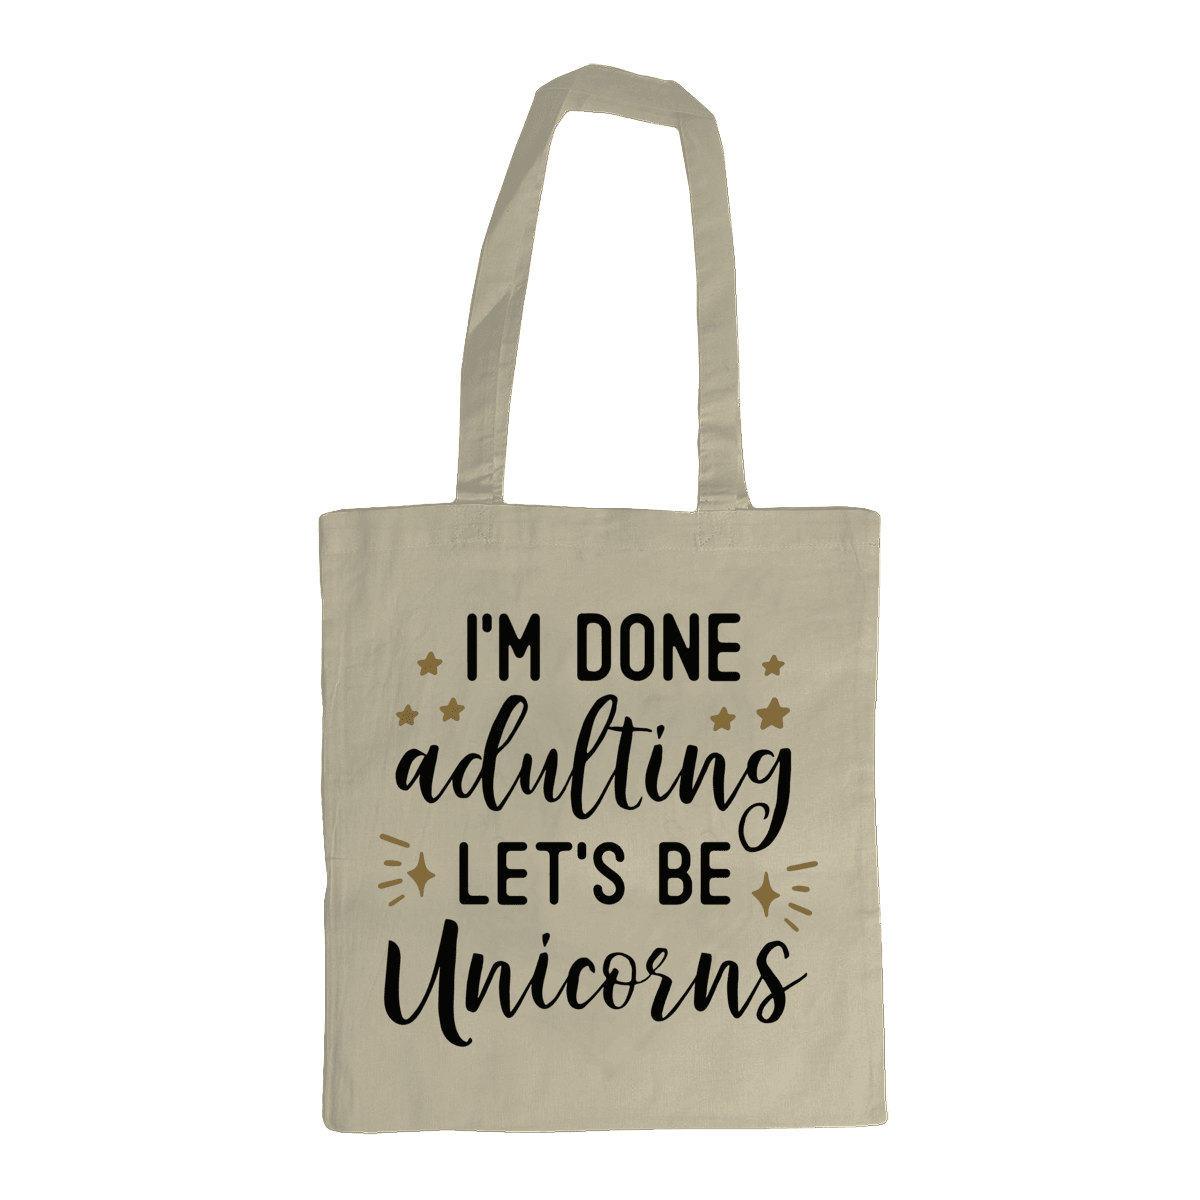 Red Berry Crafts Ltd:Let's be unicorns Shoulder Tote Bag